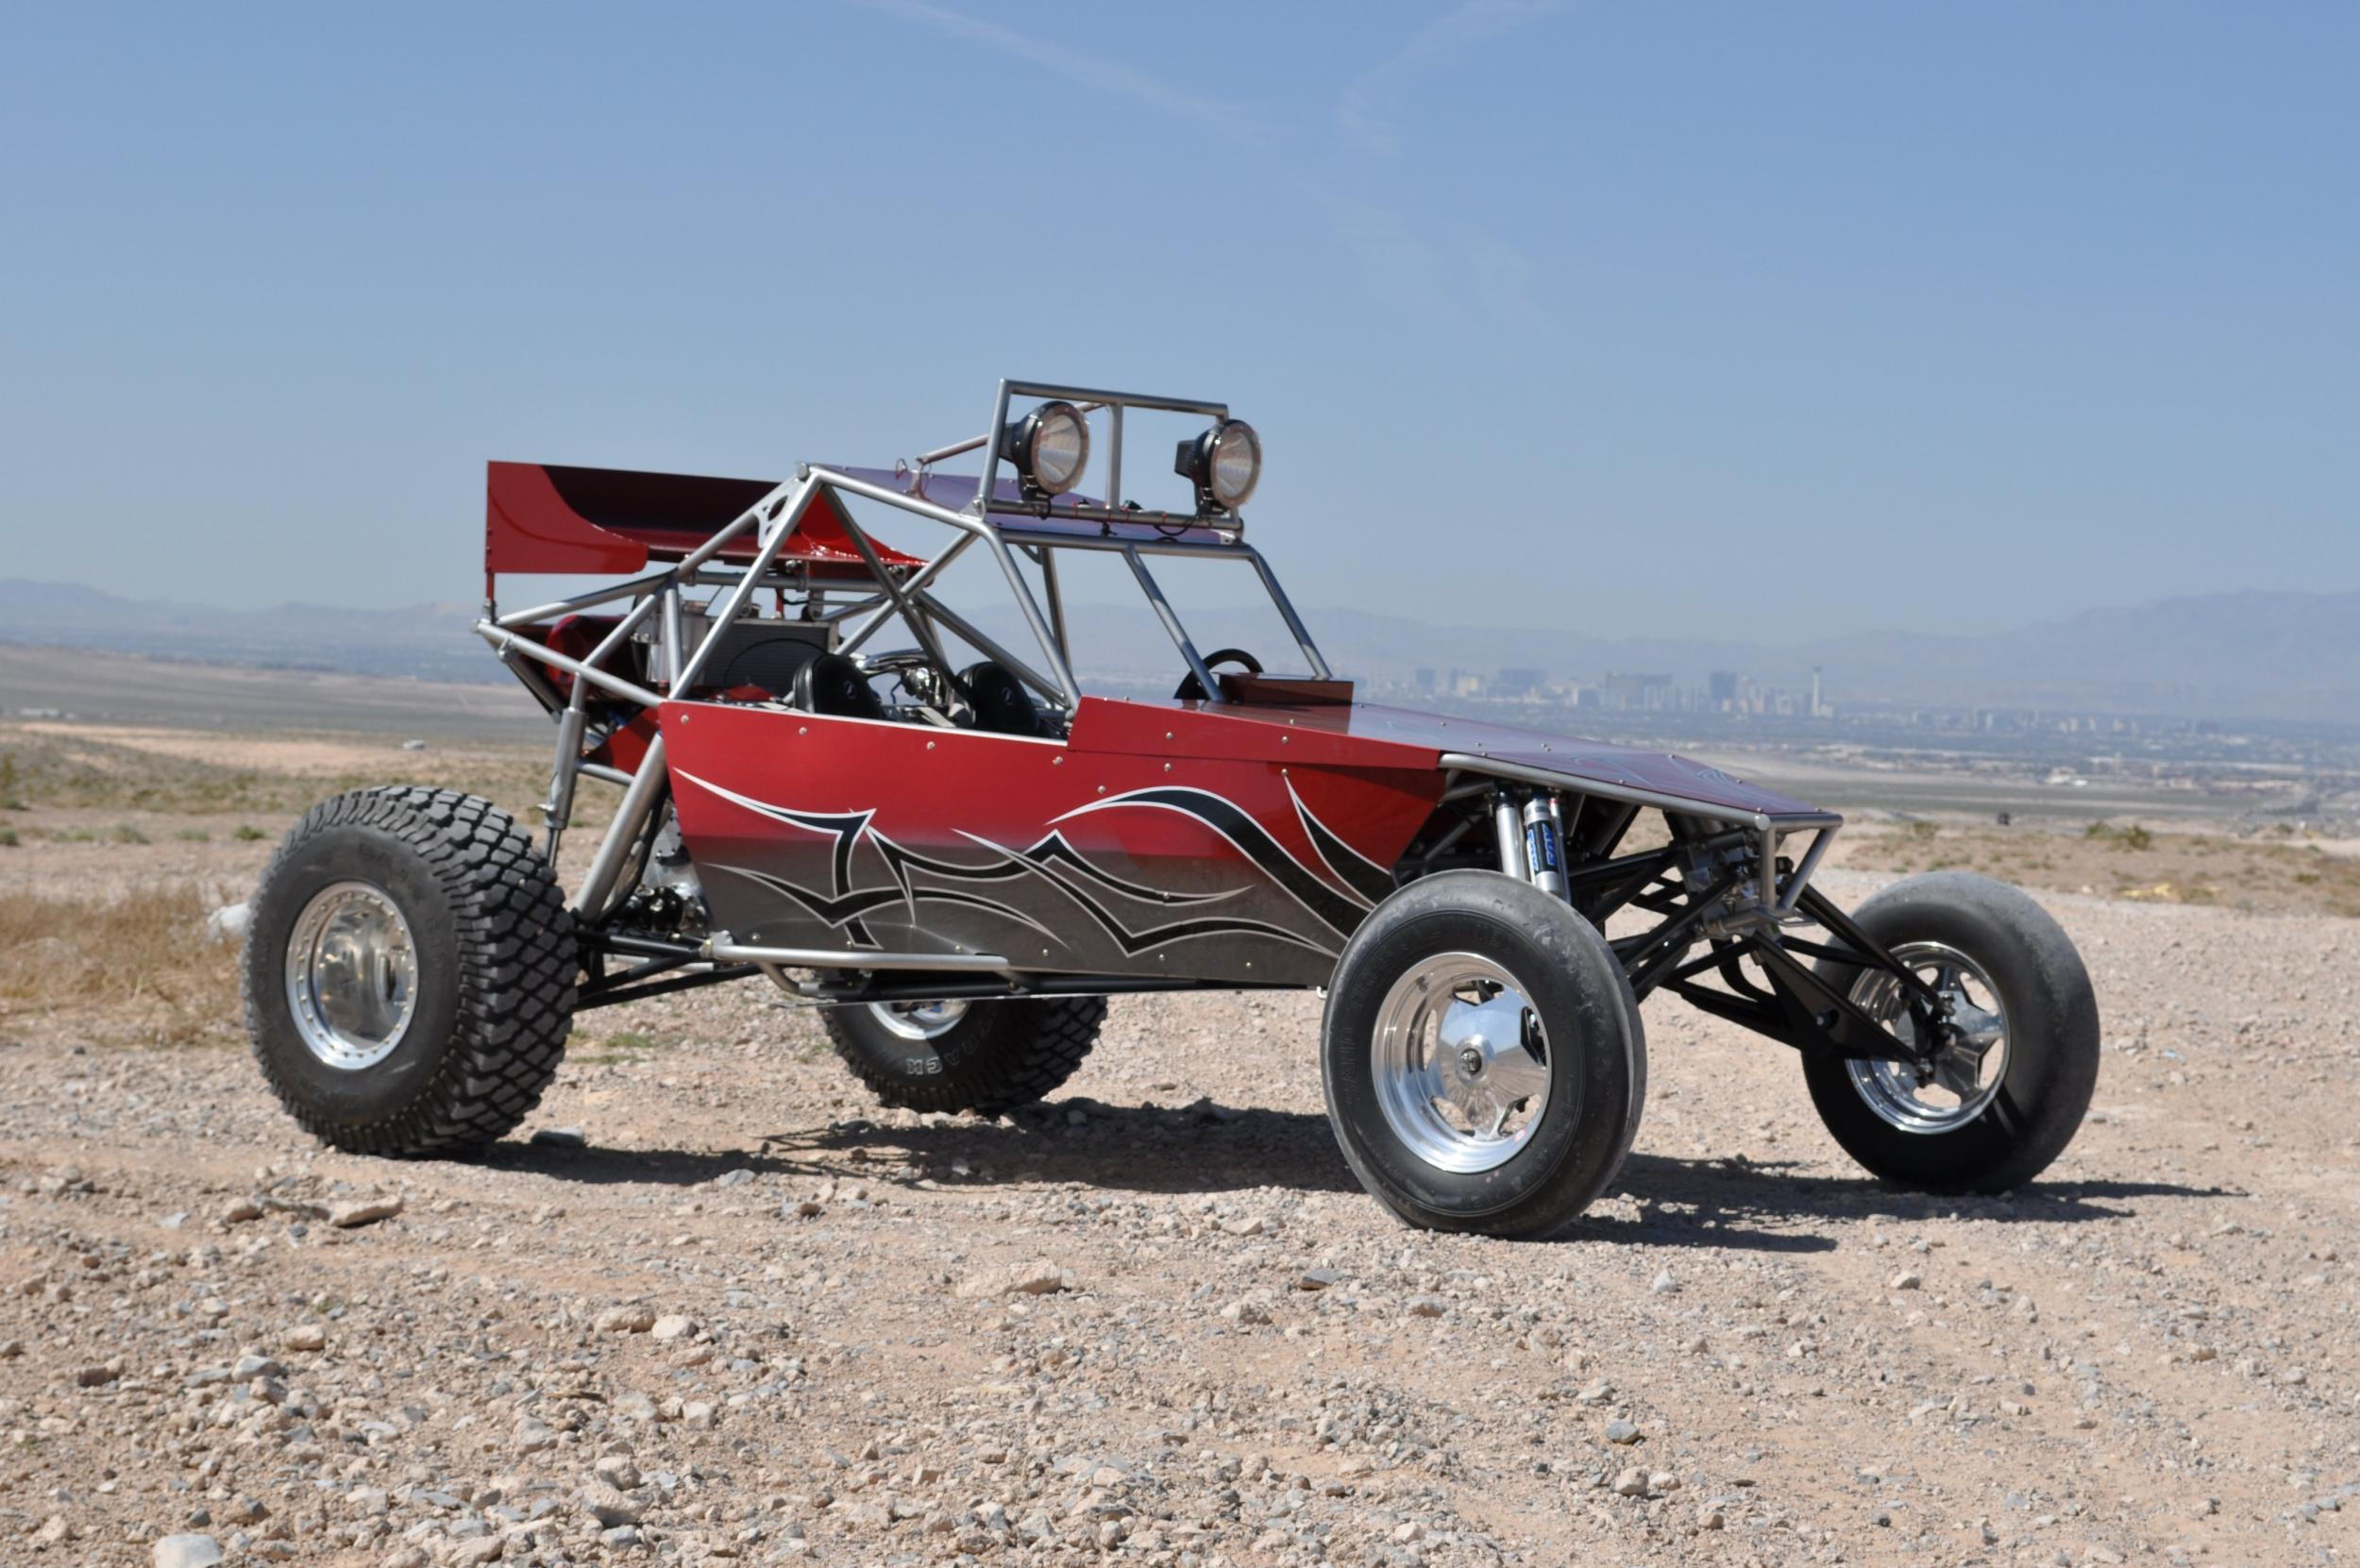 Free download SANDRAIL dunebuggy offroad hot rod rods race